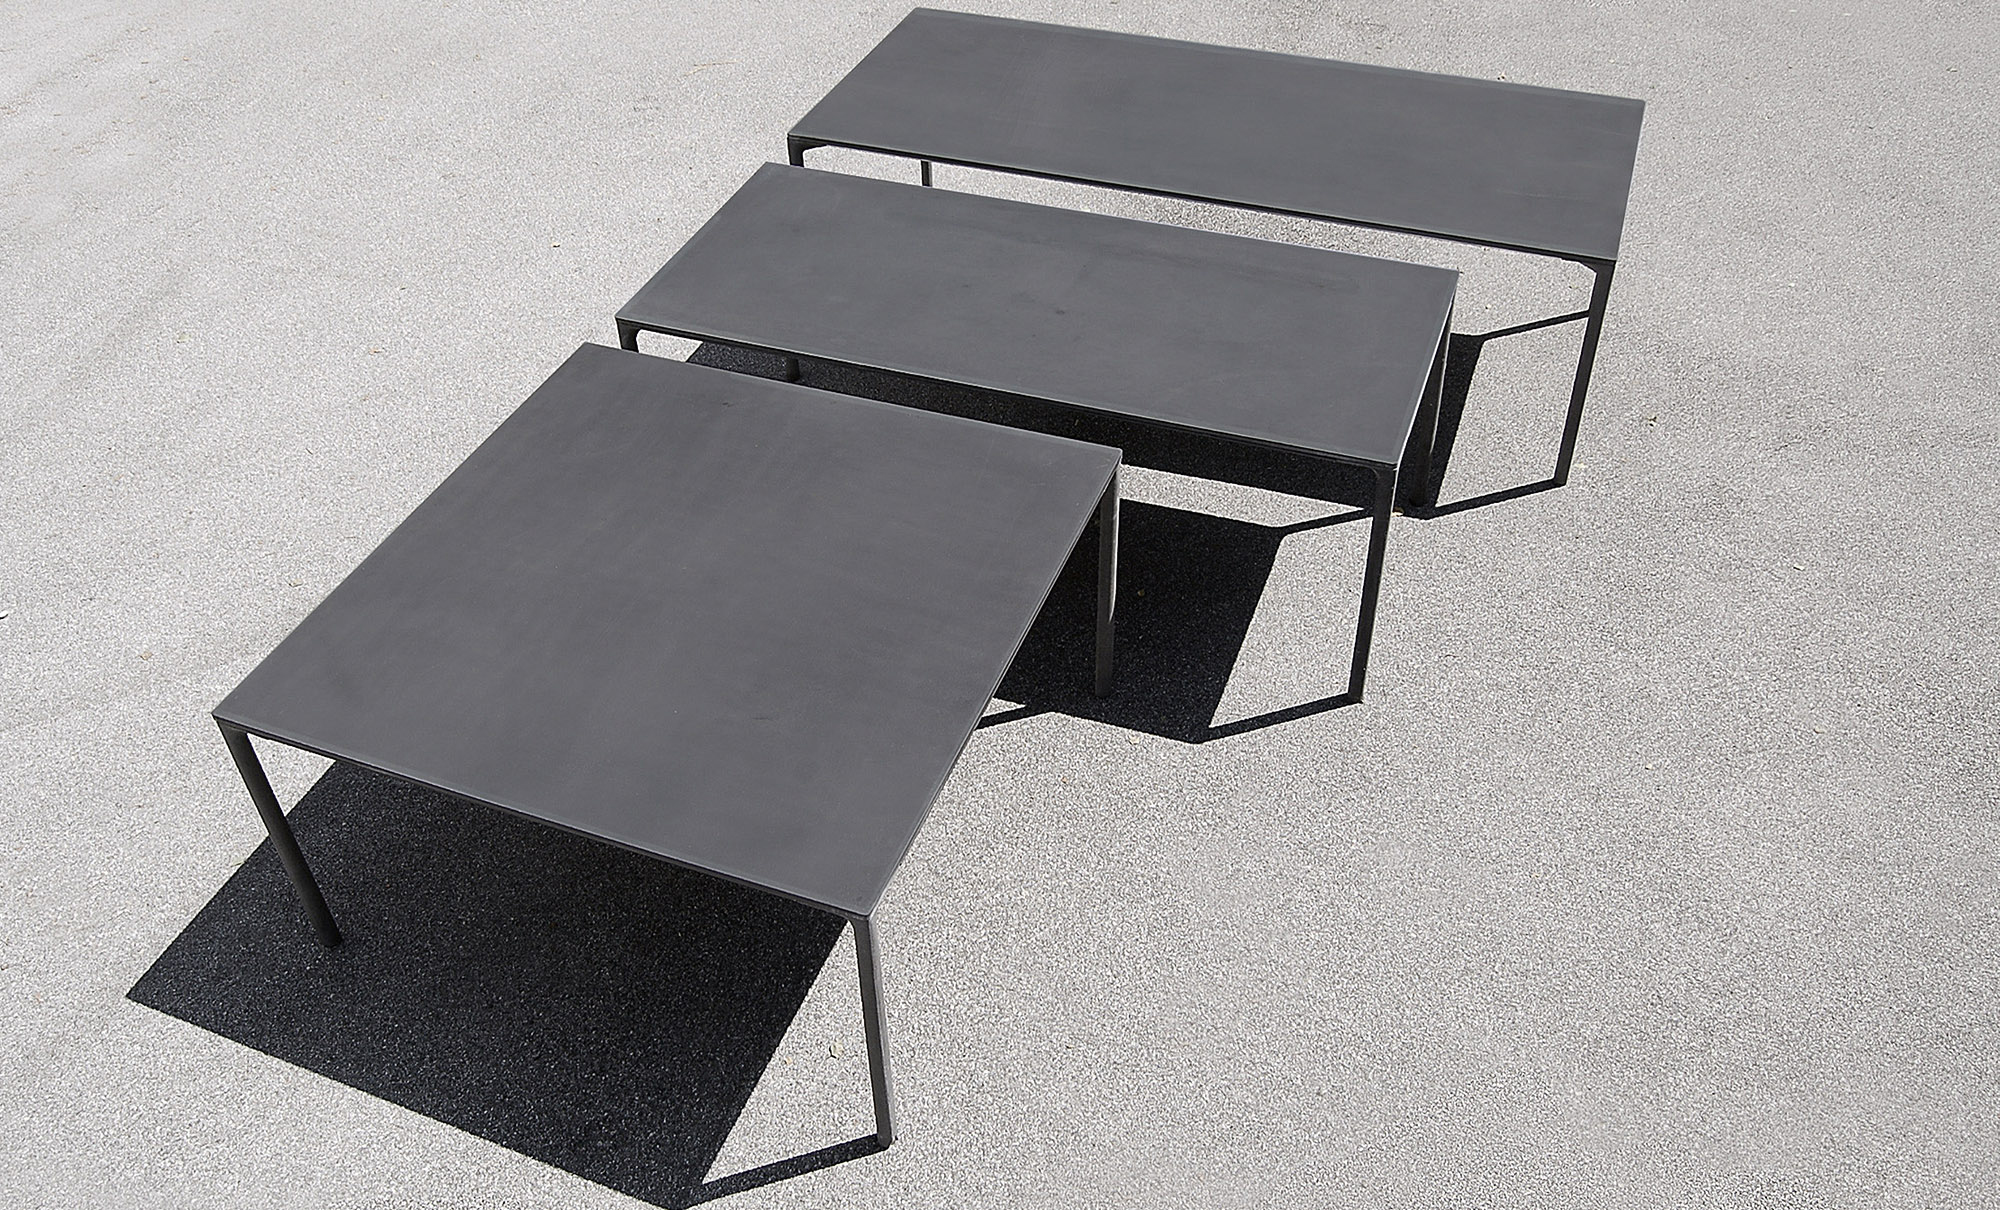 Designer Dining Tables Sydney Melbourne Fanuli Furniture - Dining table melbourne concrete dining table for sale concrete dining